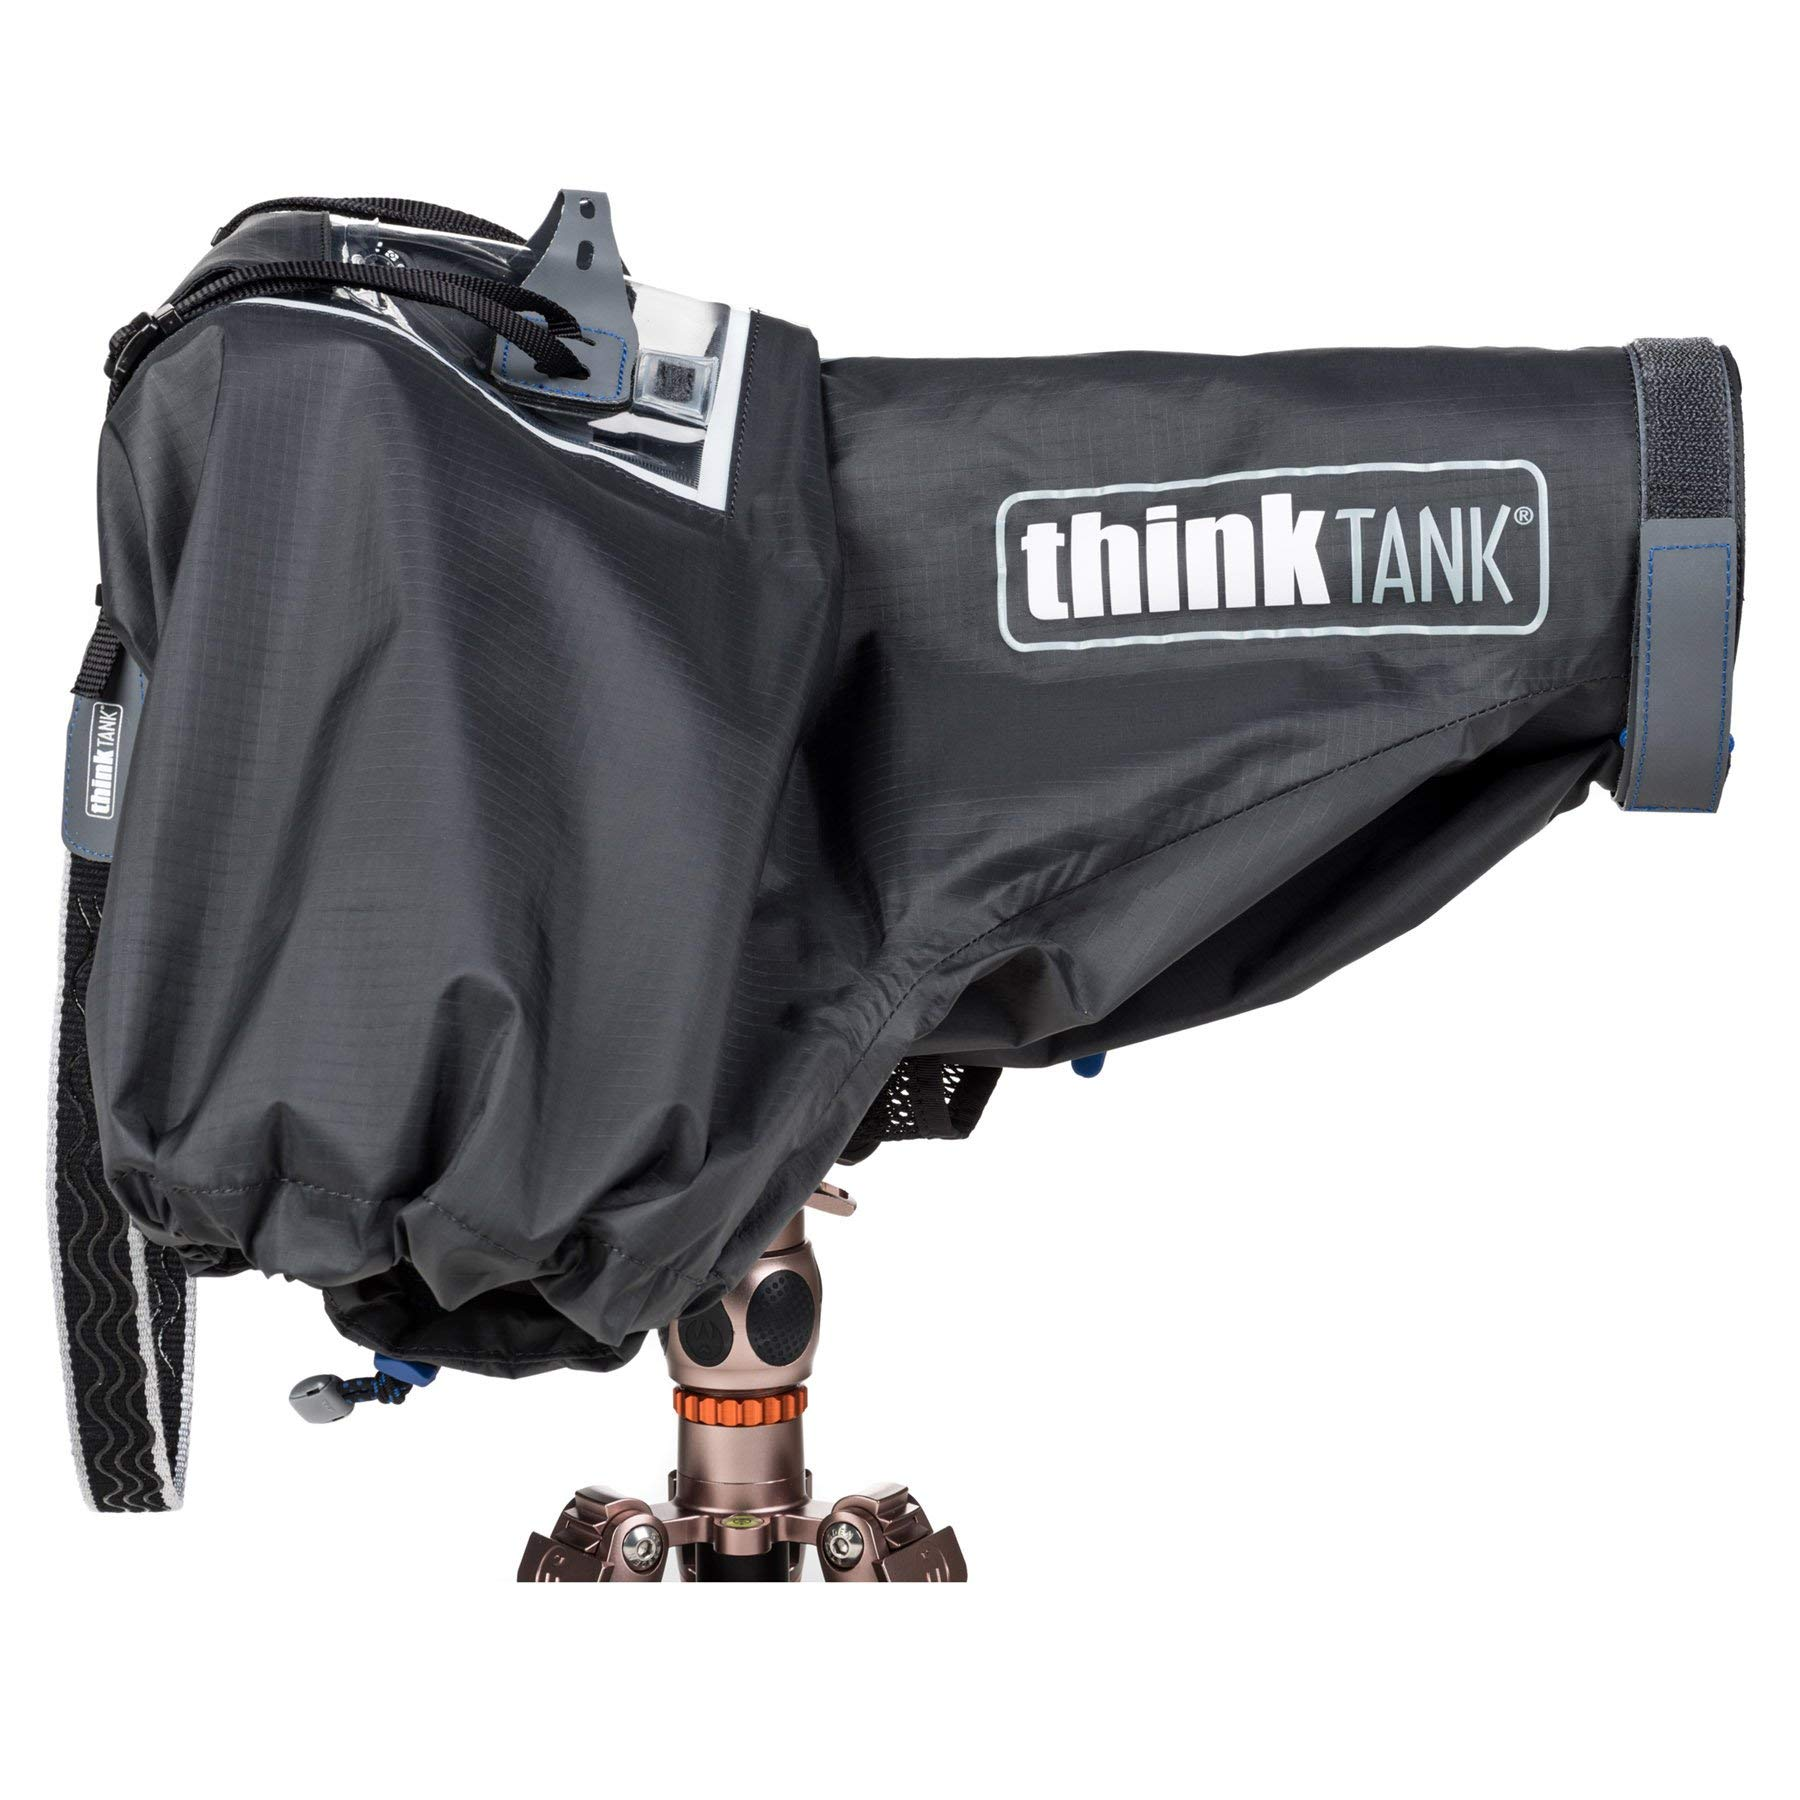 Think Tank Photo Hydrophobia D 70-200 V3 Camera Rain Cover for DSLR Camera with 70-200mm f/2.8 Lens by Think Tank (Image #4)